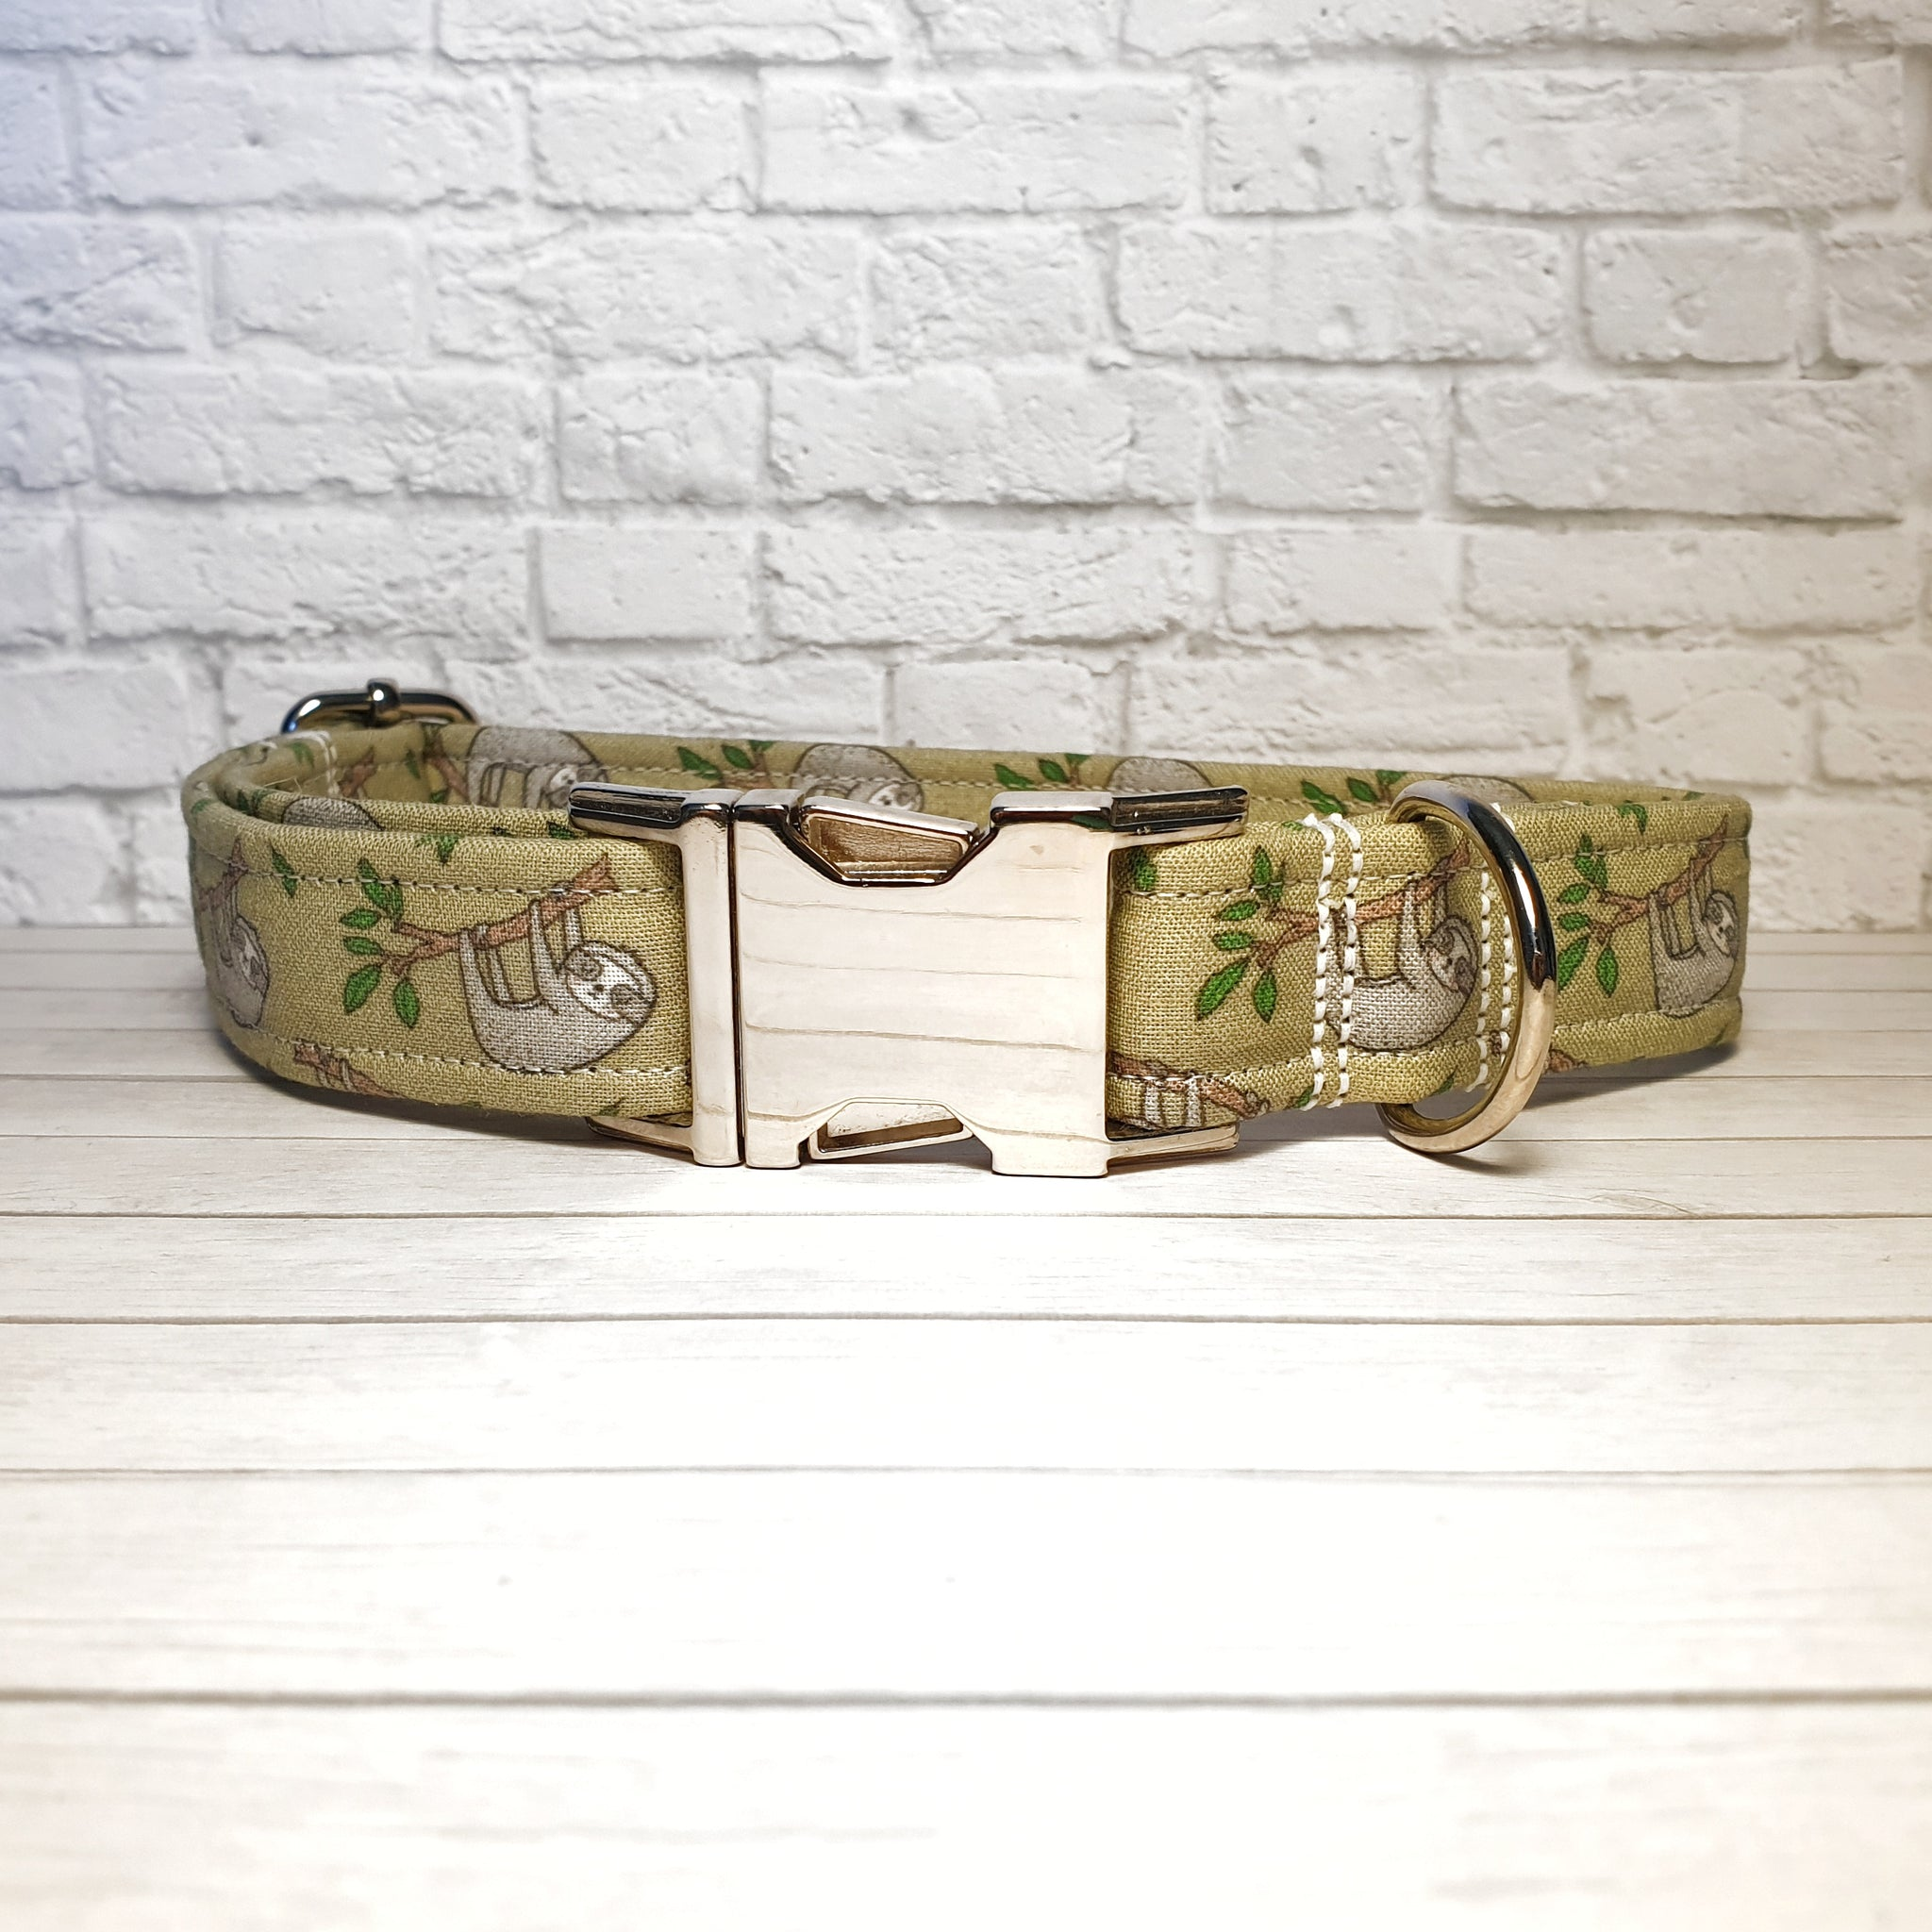 Olive Sloth Dog Collar